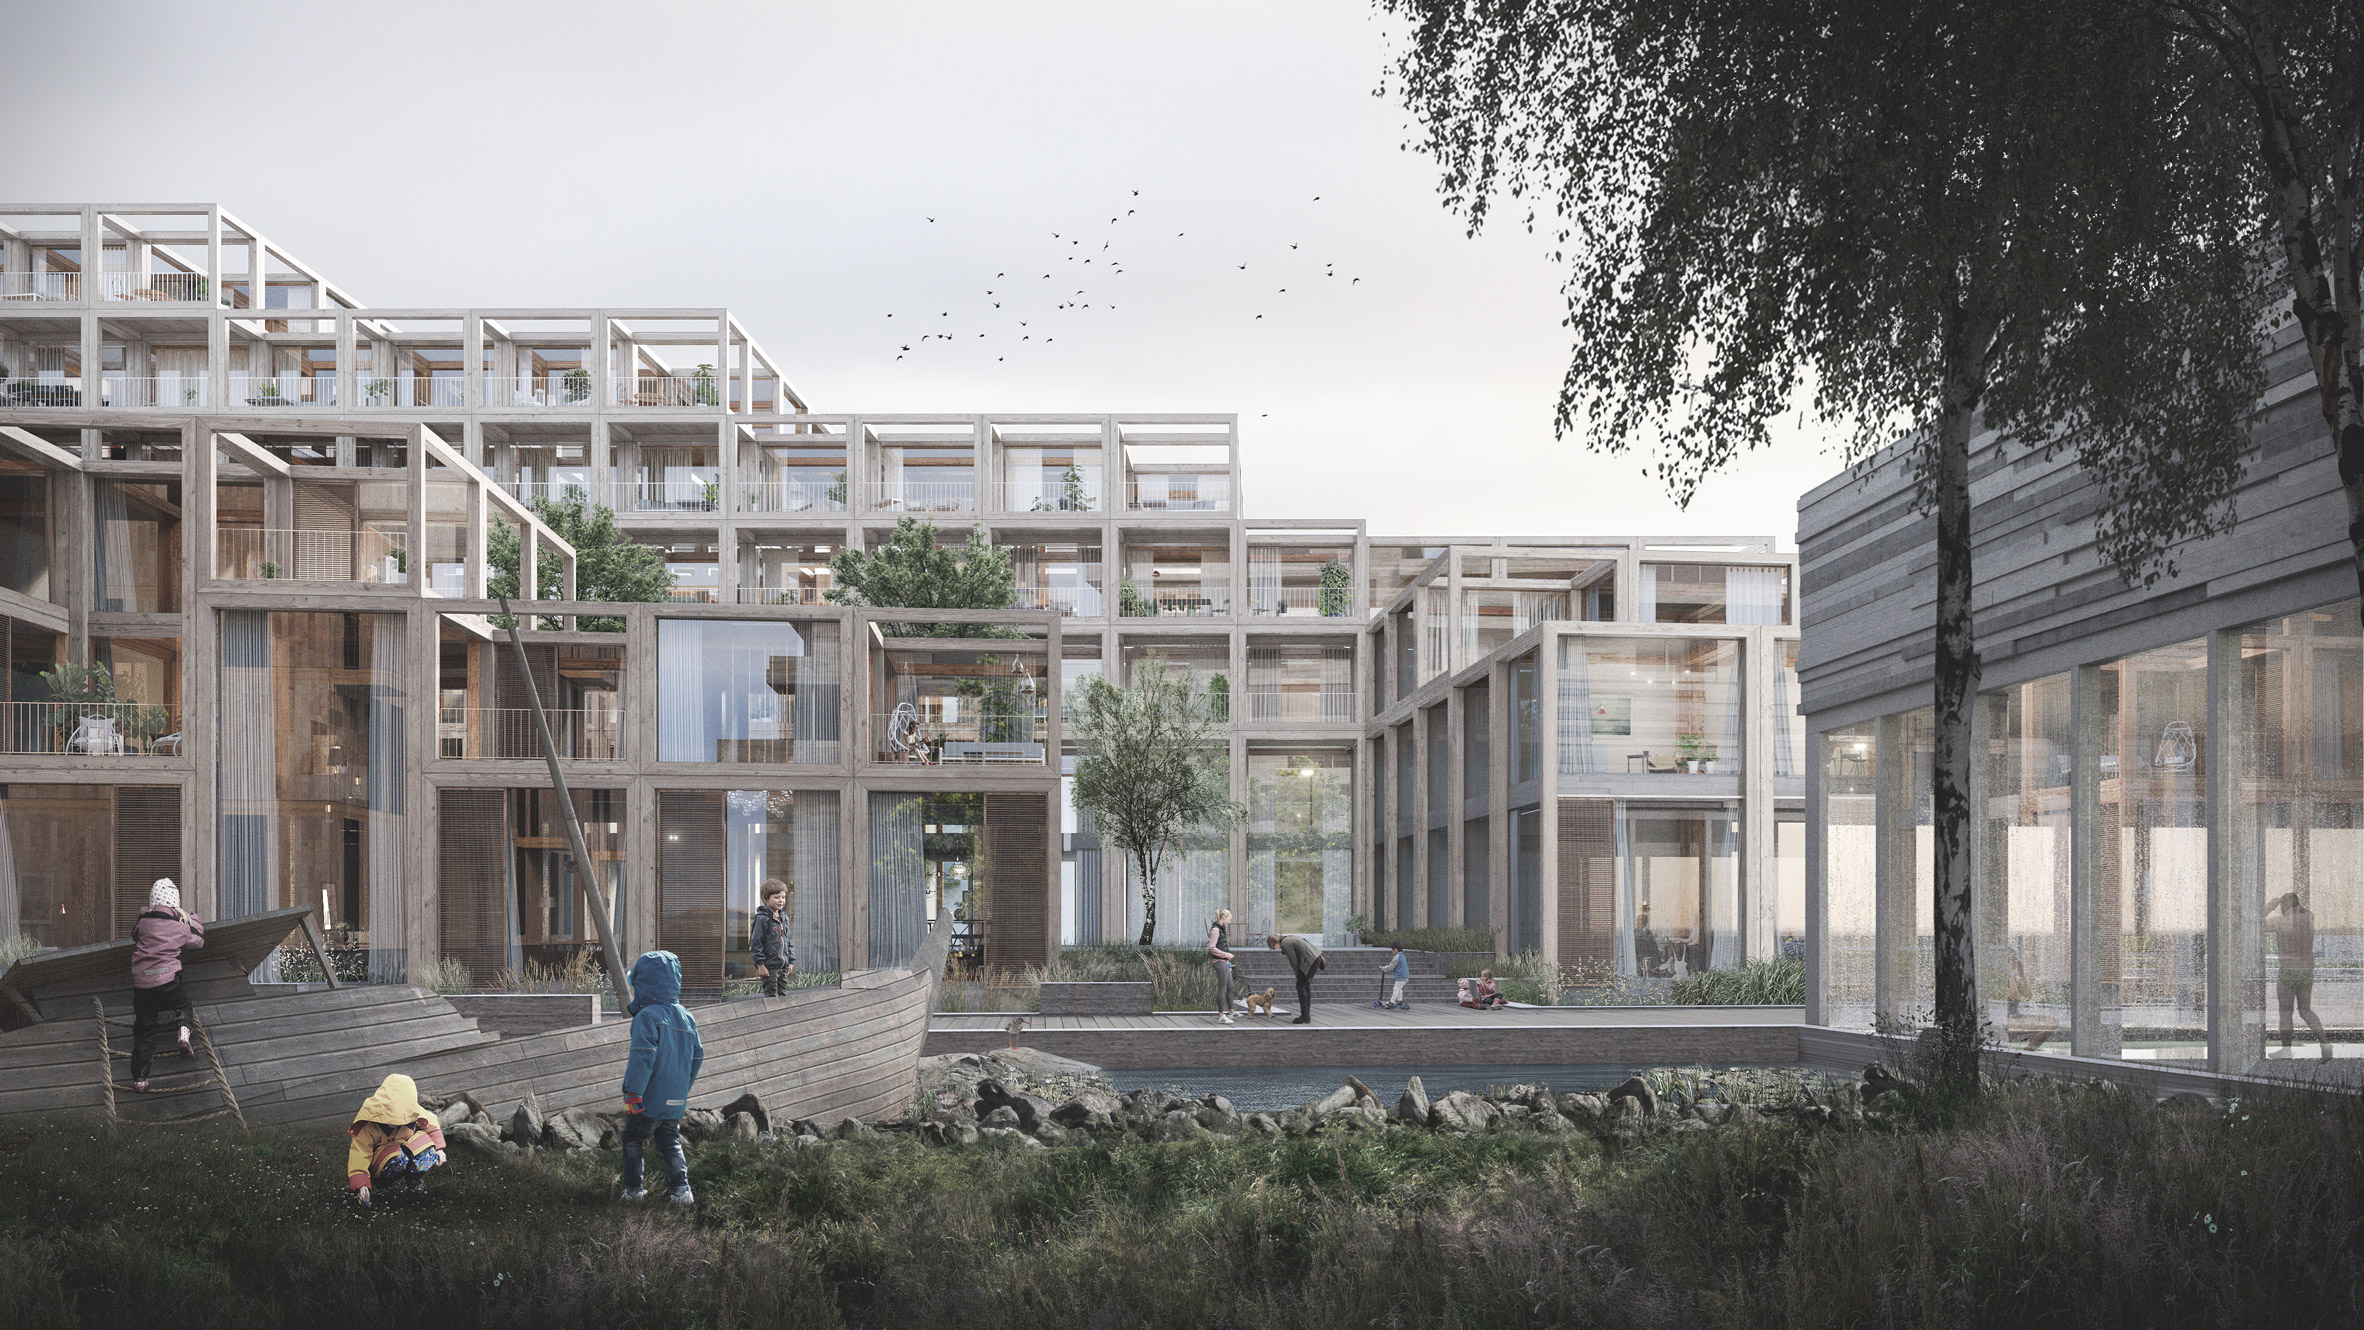 un17-village-lendager-group-copenhagen-denmark-architecture-residential-housing-sustainable_dezeen_2364_hero1.jpg